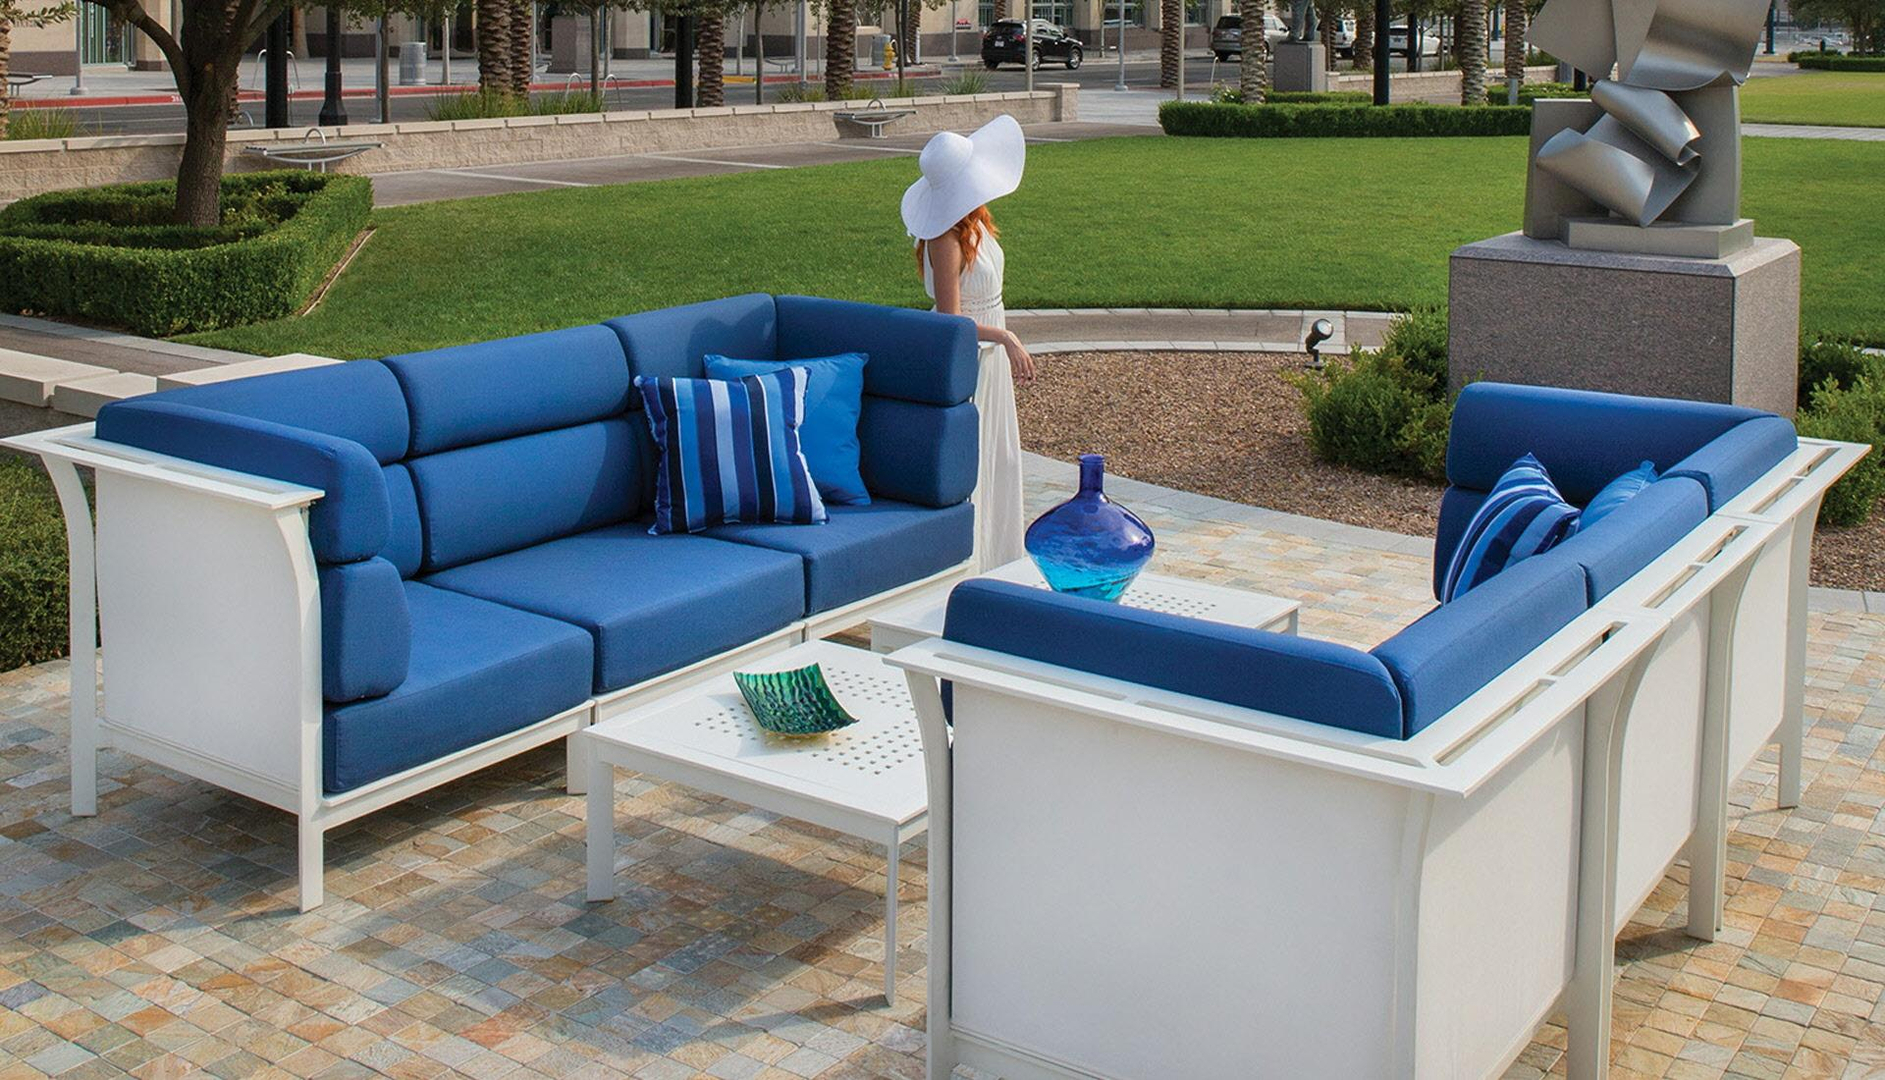 Commercial Outdoor Furniture Interior commercial outdoor furniture, wicker outdoor furniture - crider